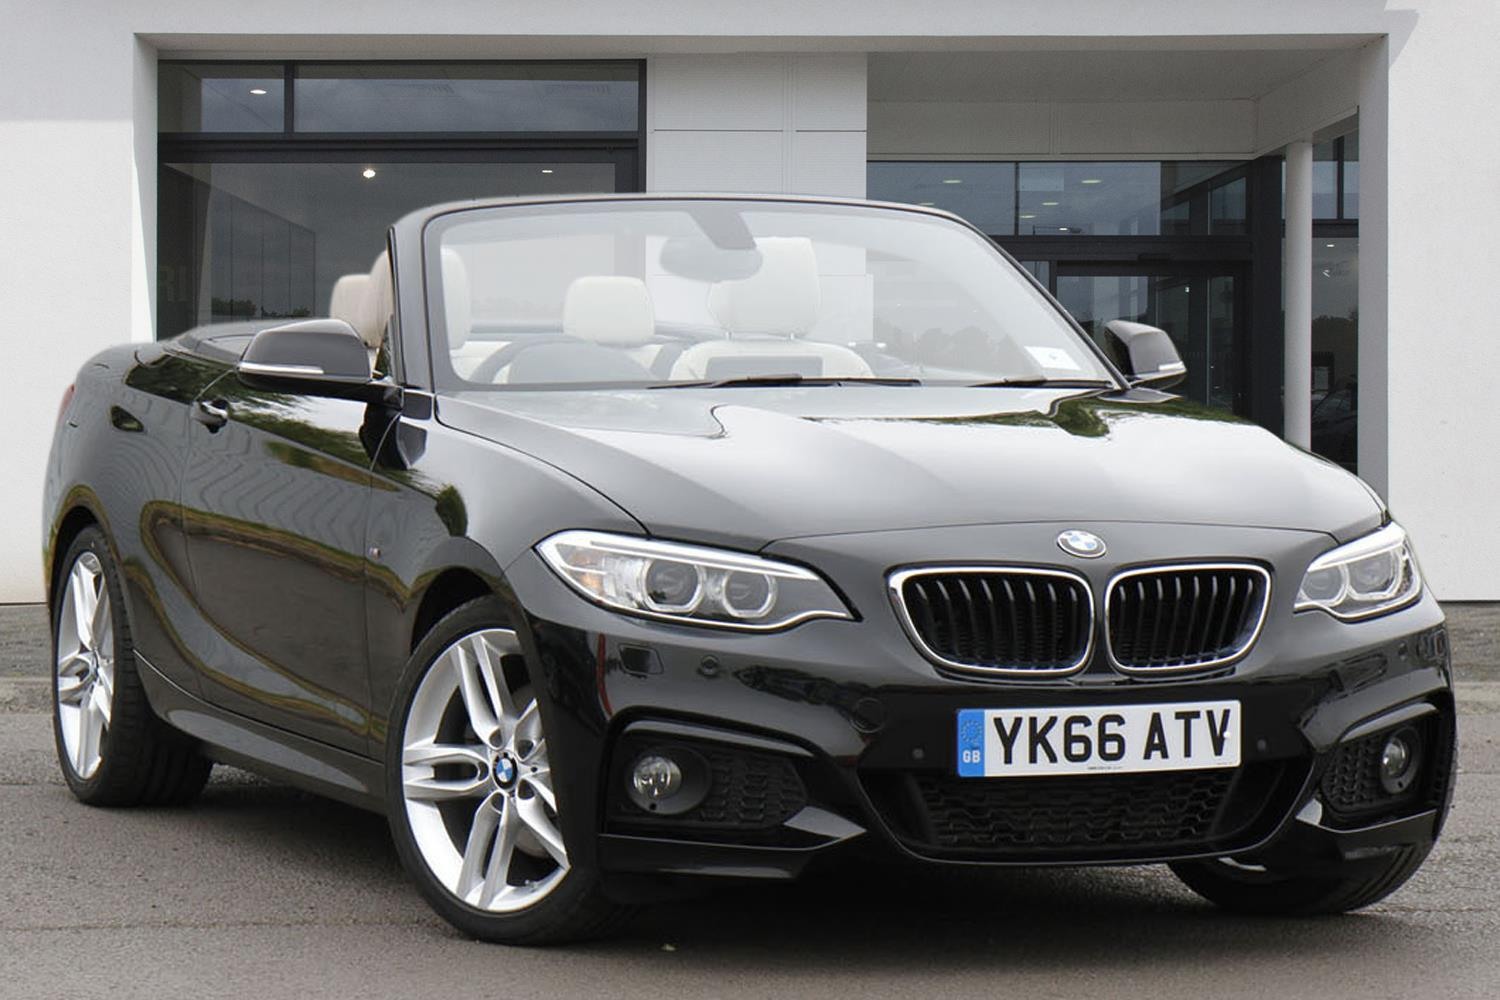 BMW 2 Series Convertible YK66ATV - Image 10